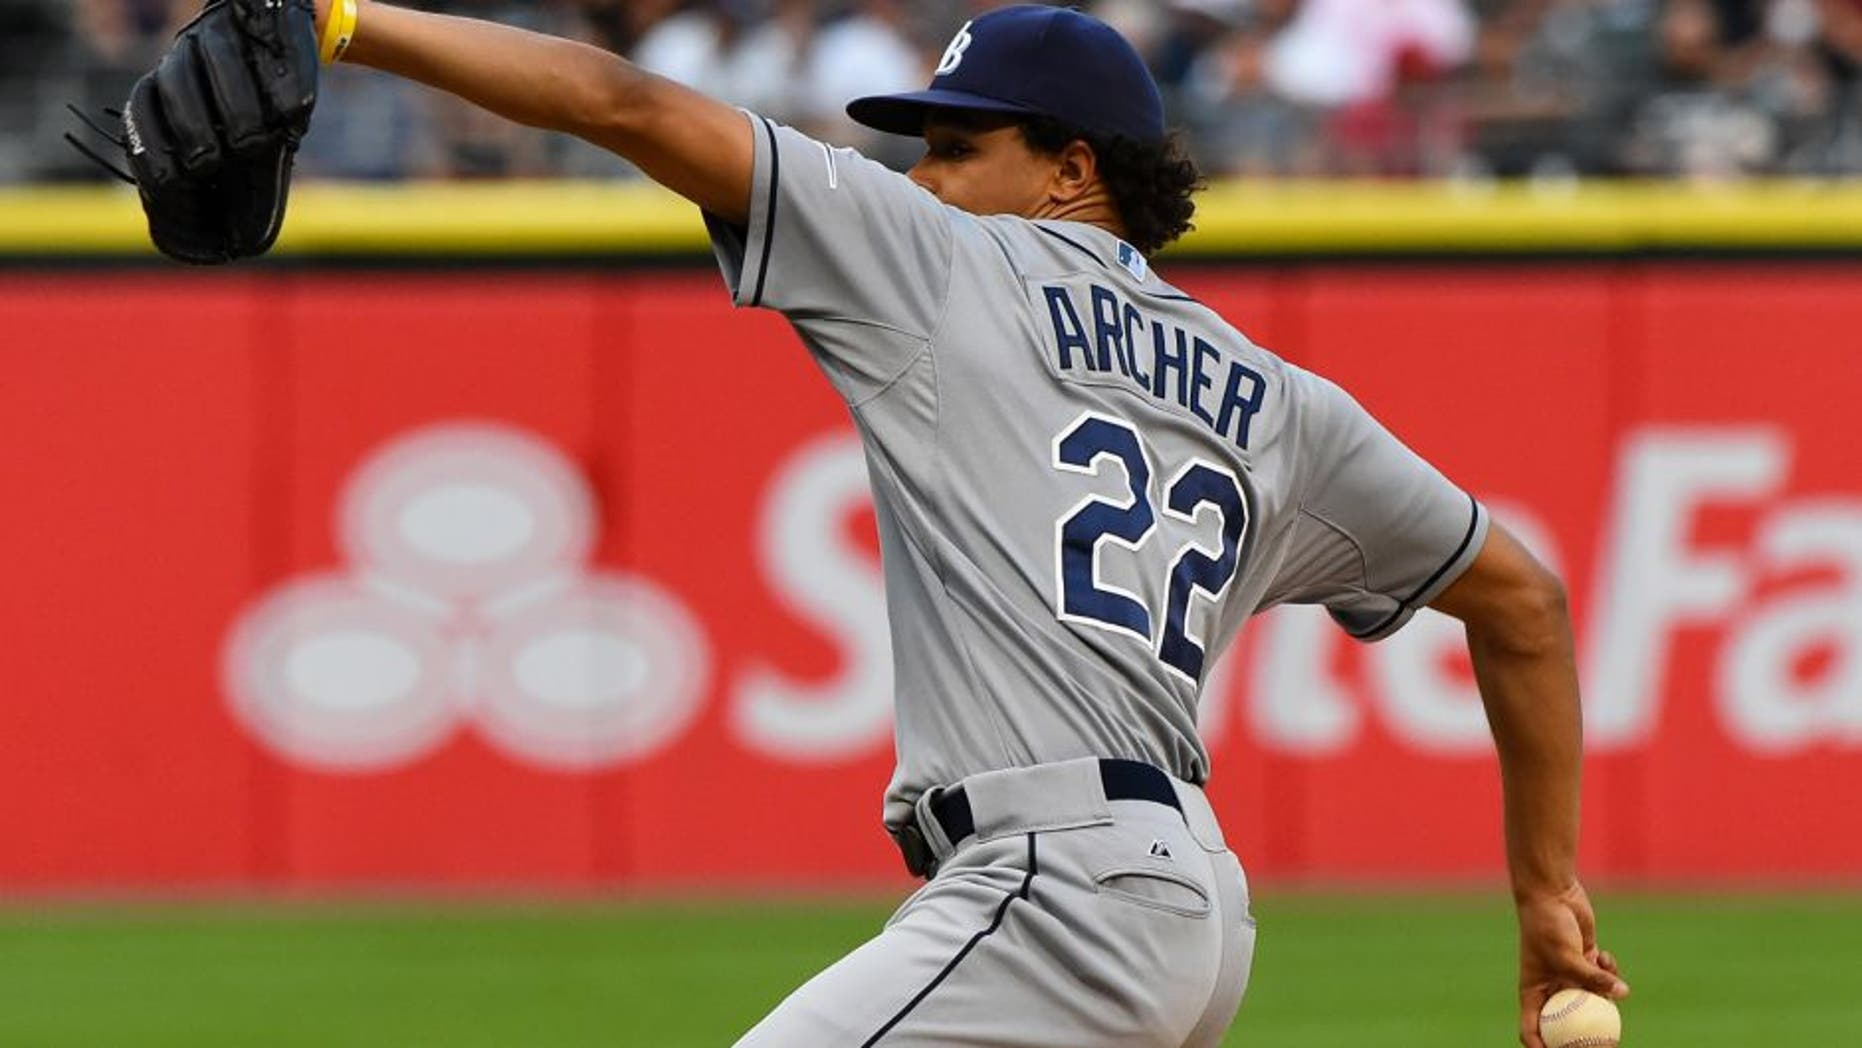 Aug 4, 2015; Chicago, IL, USA; Tampa Bay Rays starting pitcher Chris Archer (22) throws a pitch against the Chicago White Sox during the first inning at U.S Cellular Field. Mandatory Credit: Mike DiNovo-USA TODAY Sports